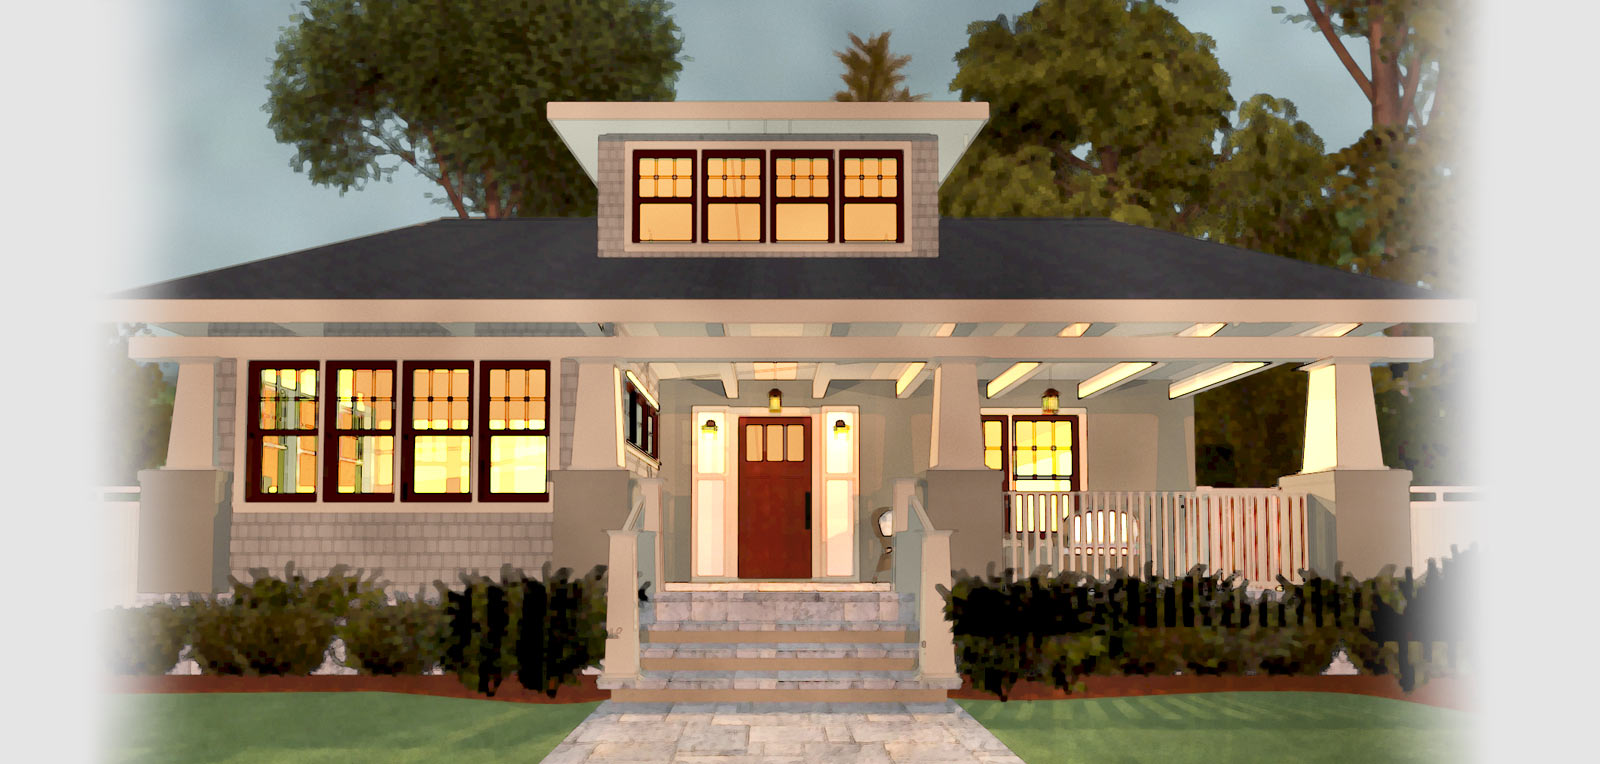 home designer software home design remodeling projects home design architectural rendering civil